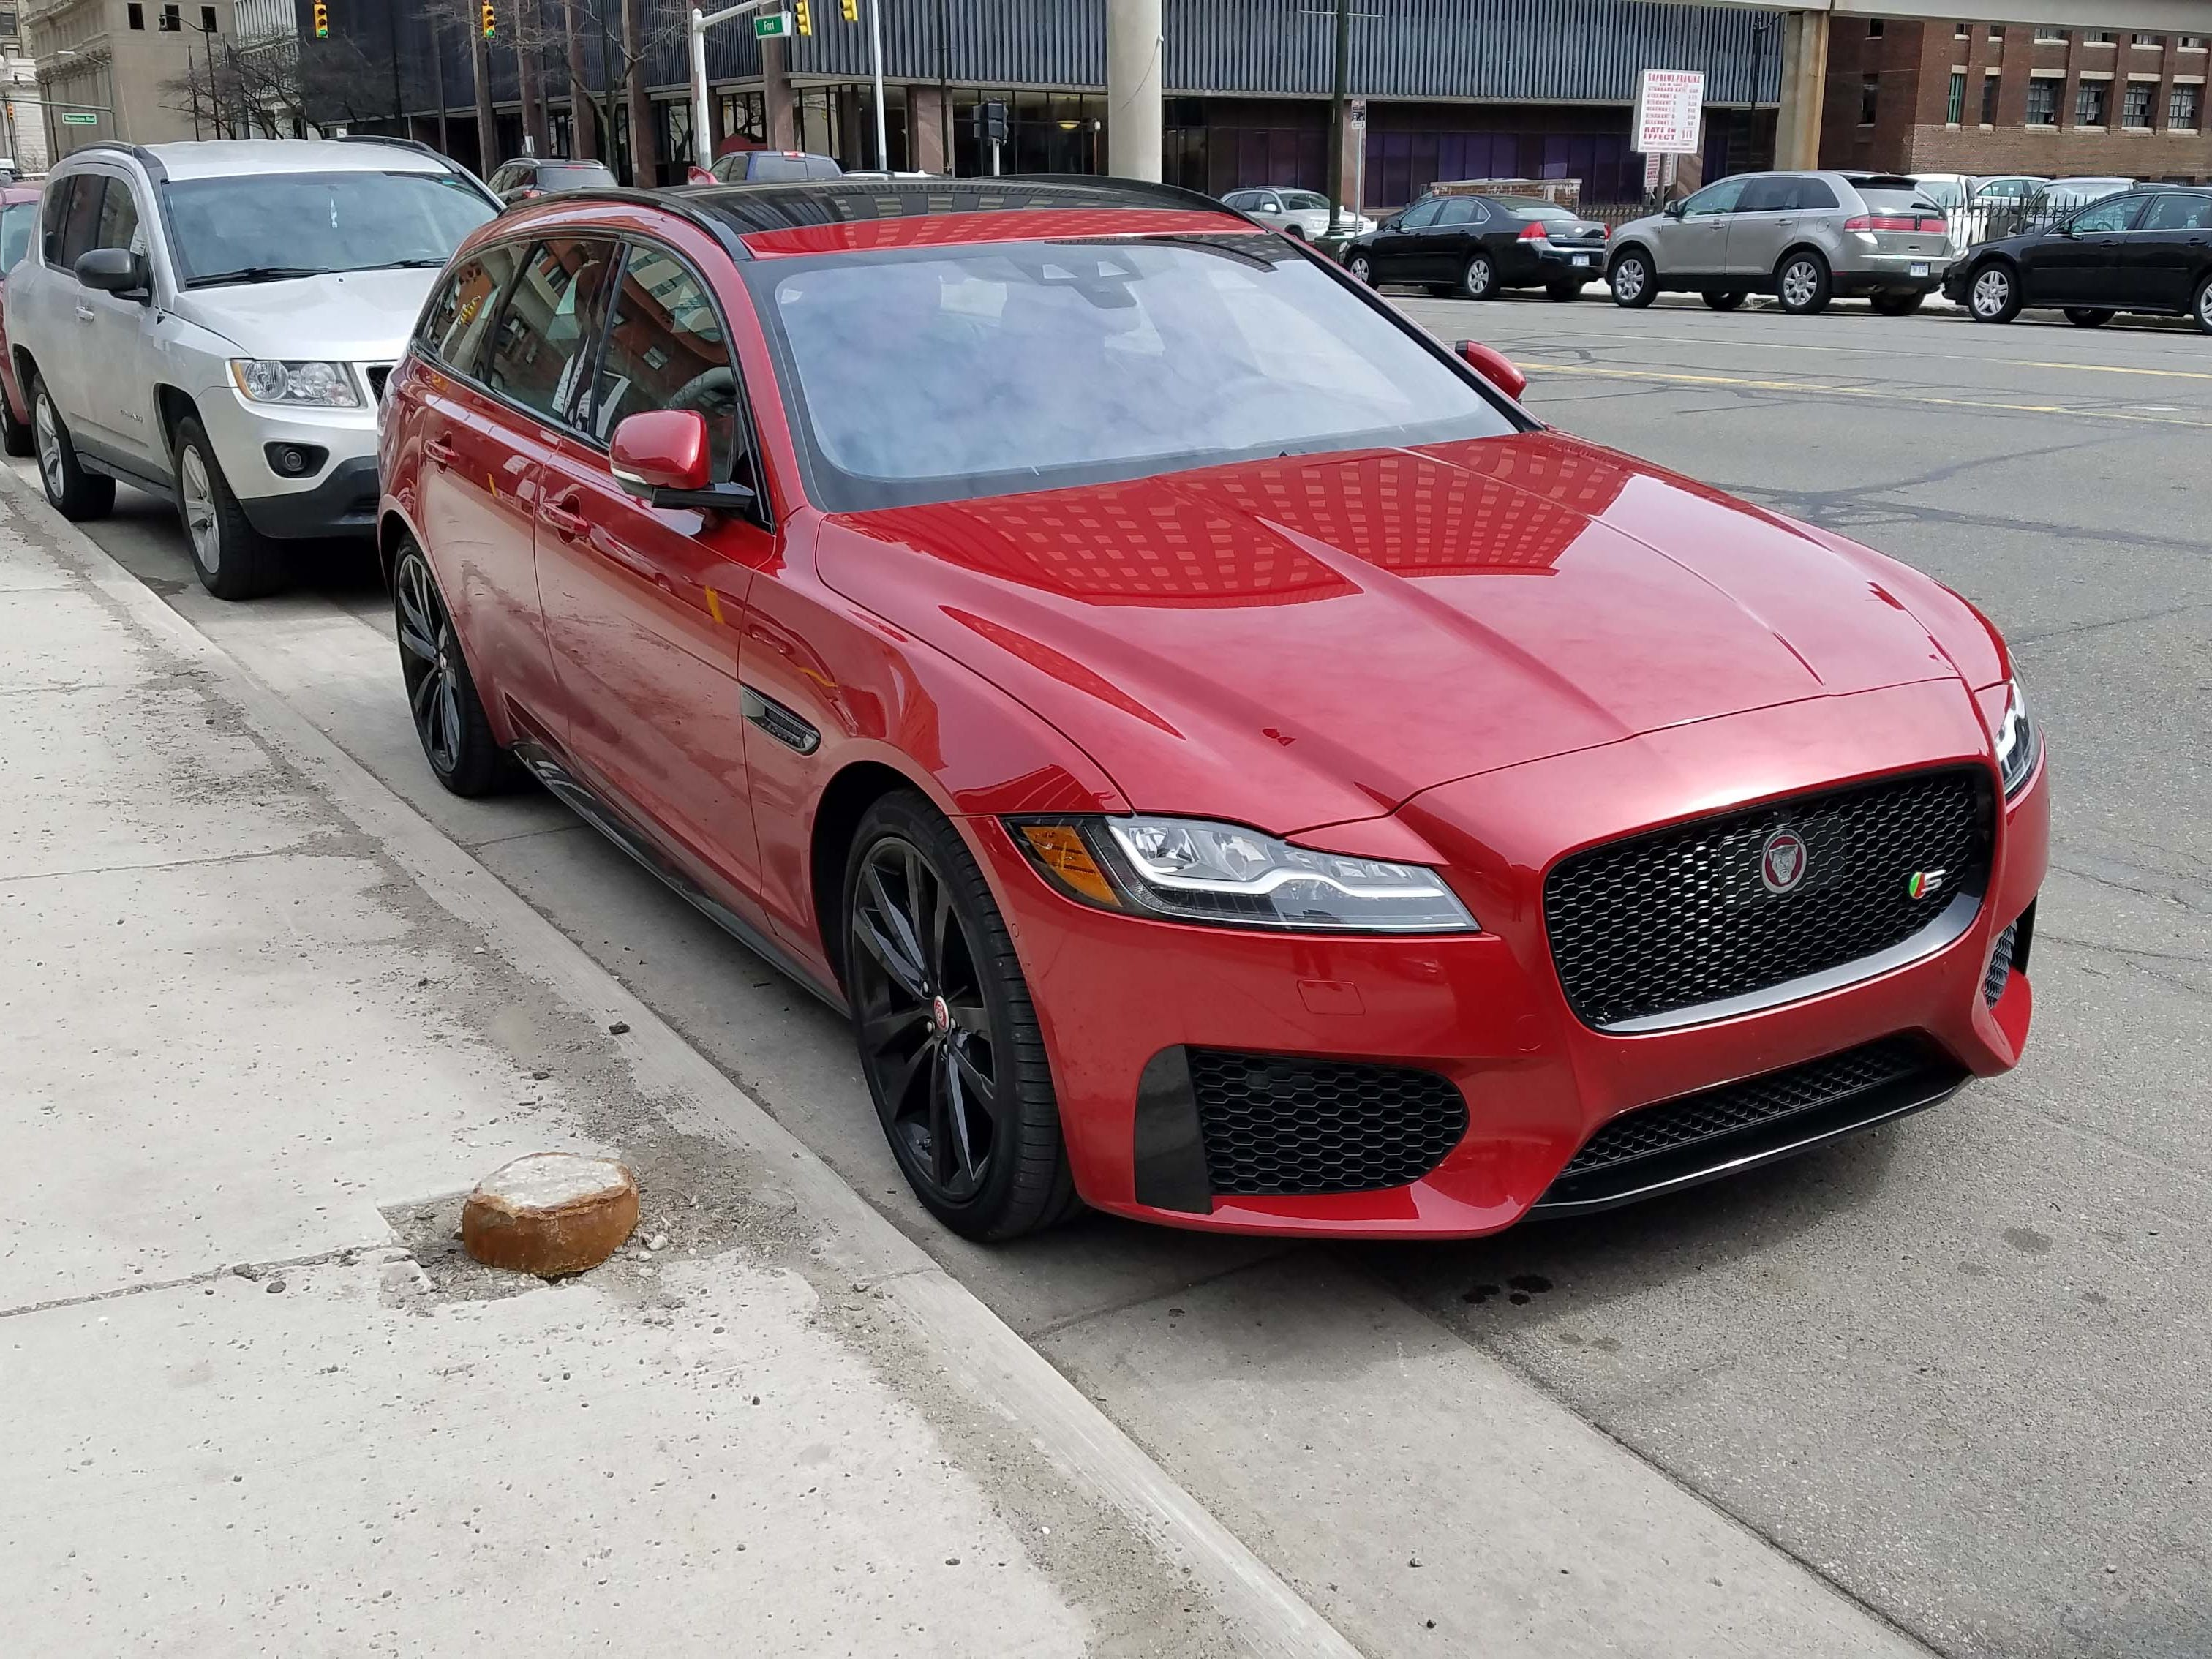 The Jaguar XF Sportbrake stands out on Detroit's downtown streets — and its self-assist feature can automatically pull into parallel parking spaces.